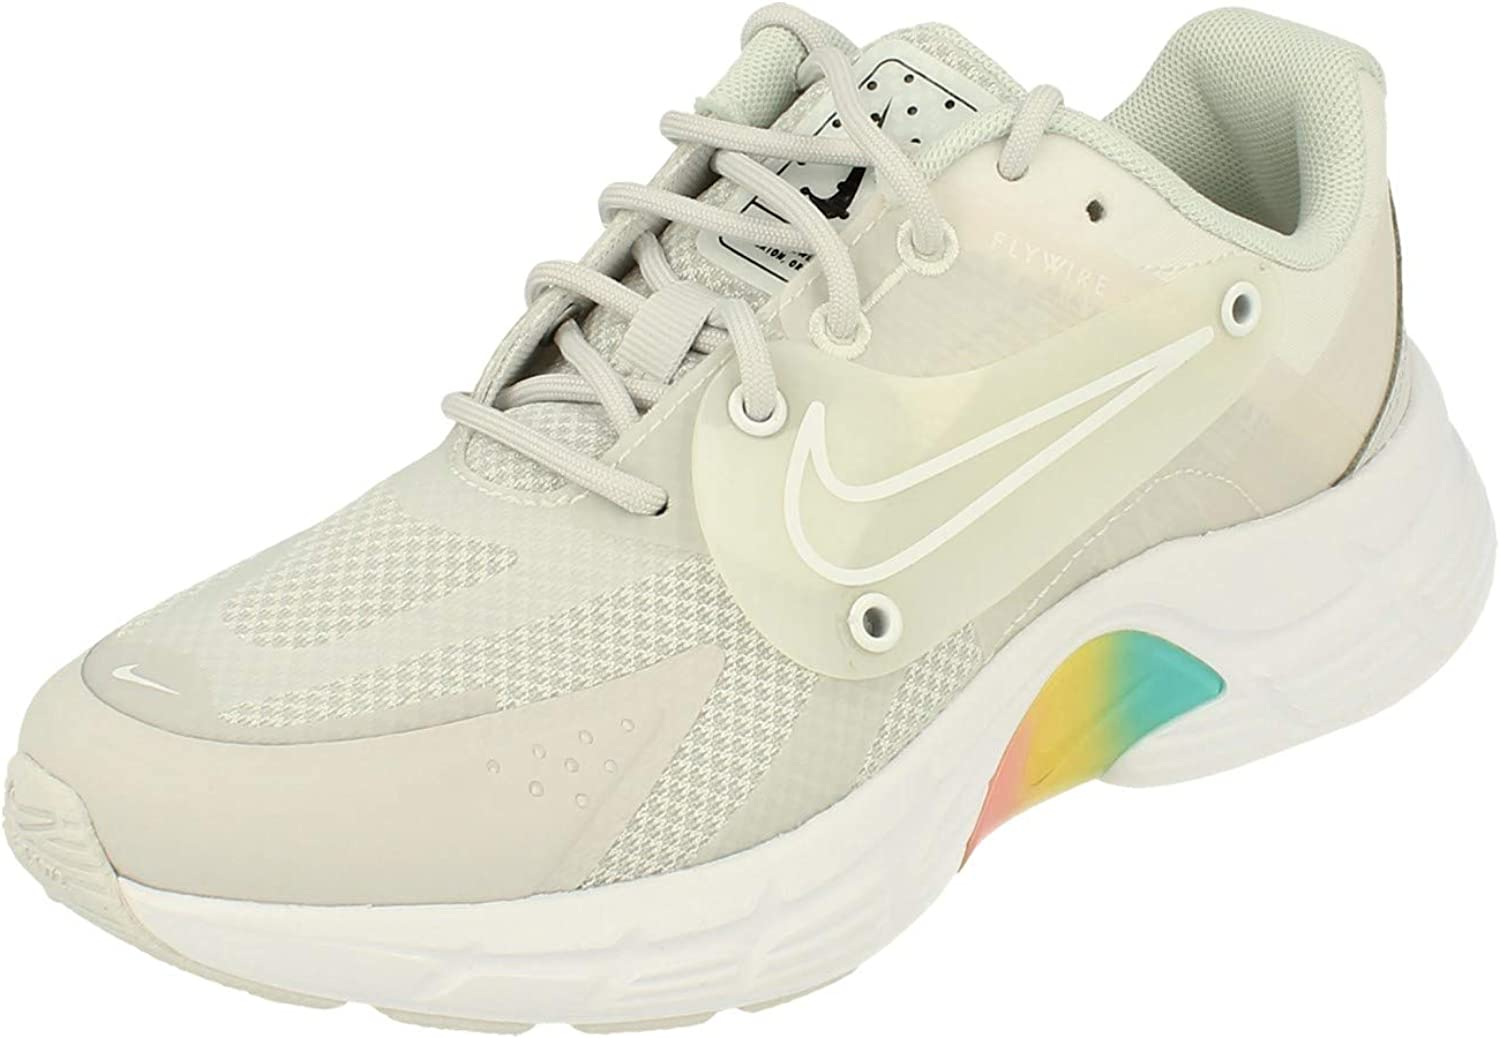 Nike Many popular brands Womens Alphina 5000 sale Running Ck4330 Shoes Sneakers Trainers